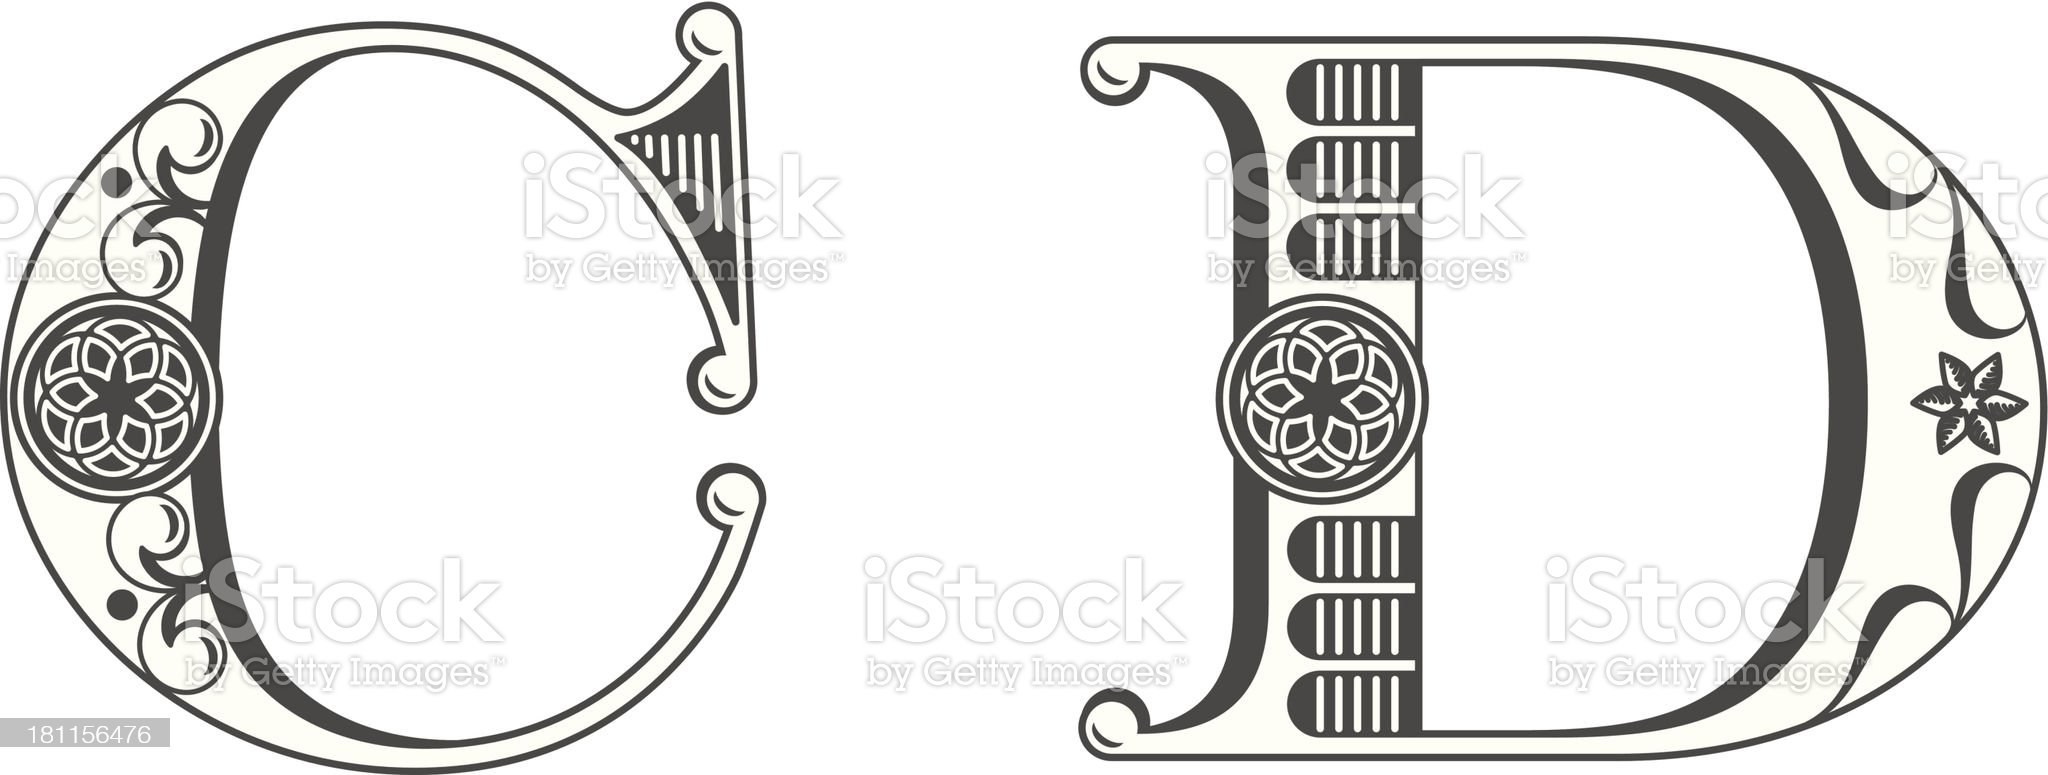 Letters C and D royalty-free stock vector art